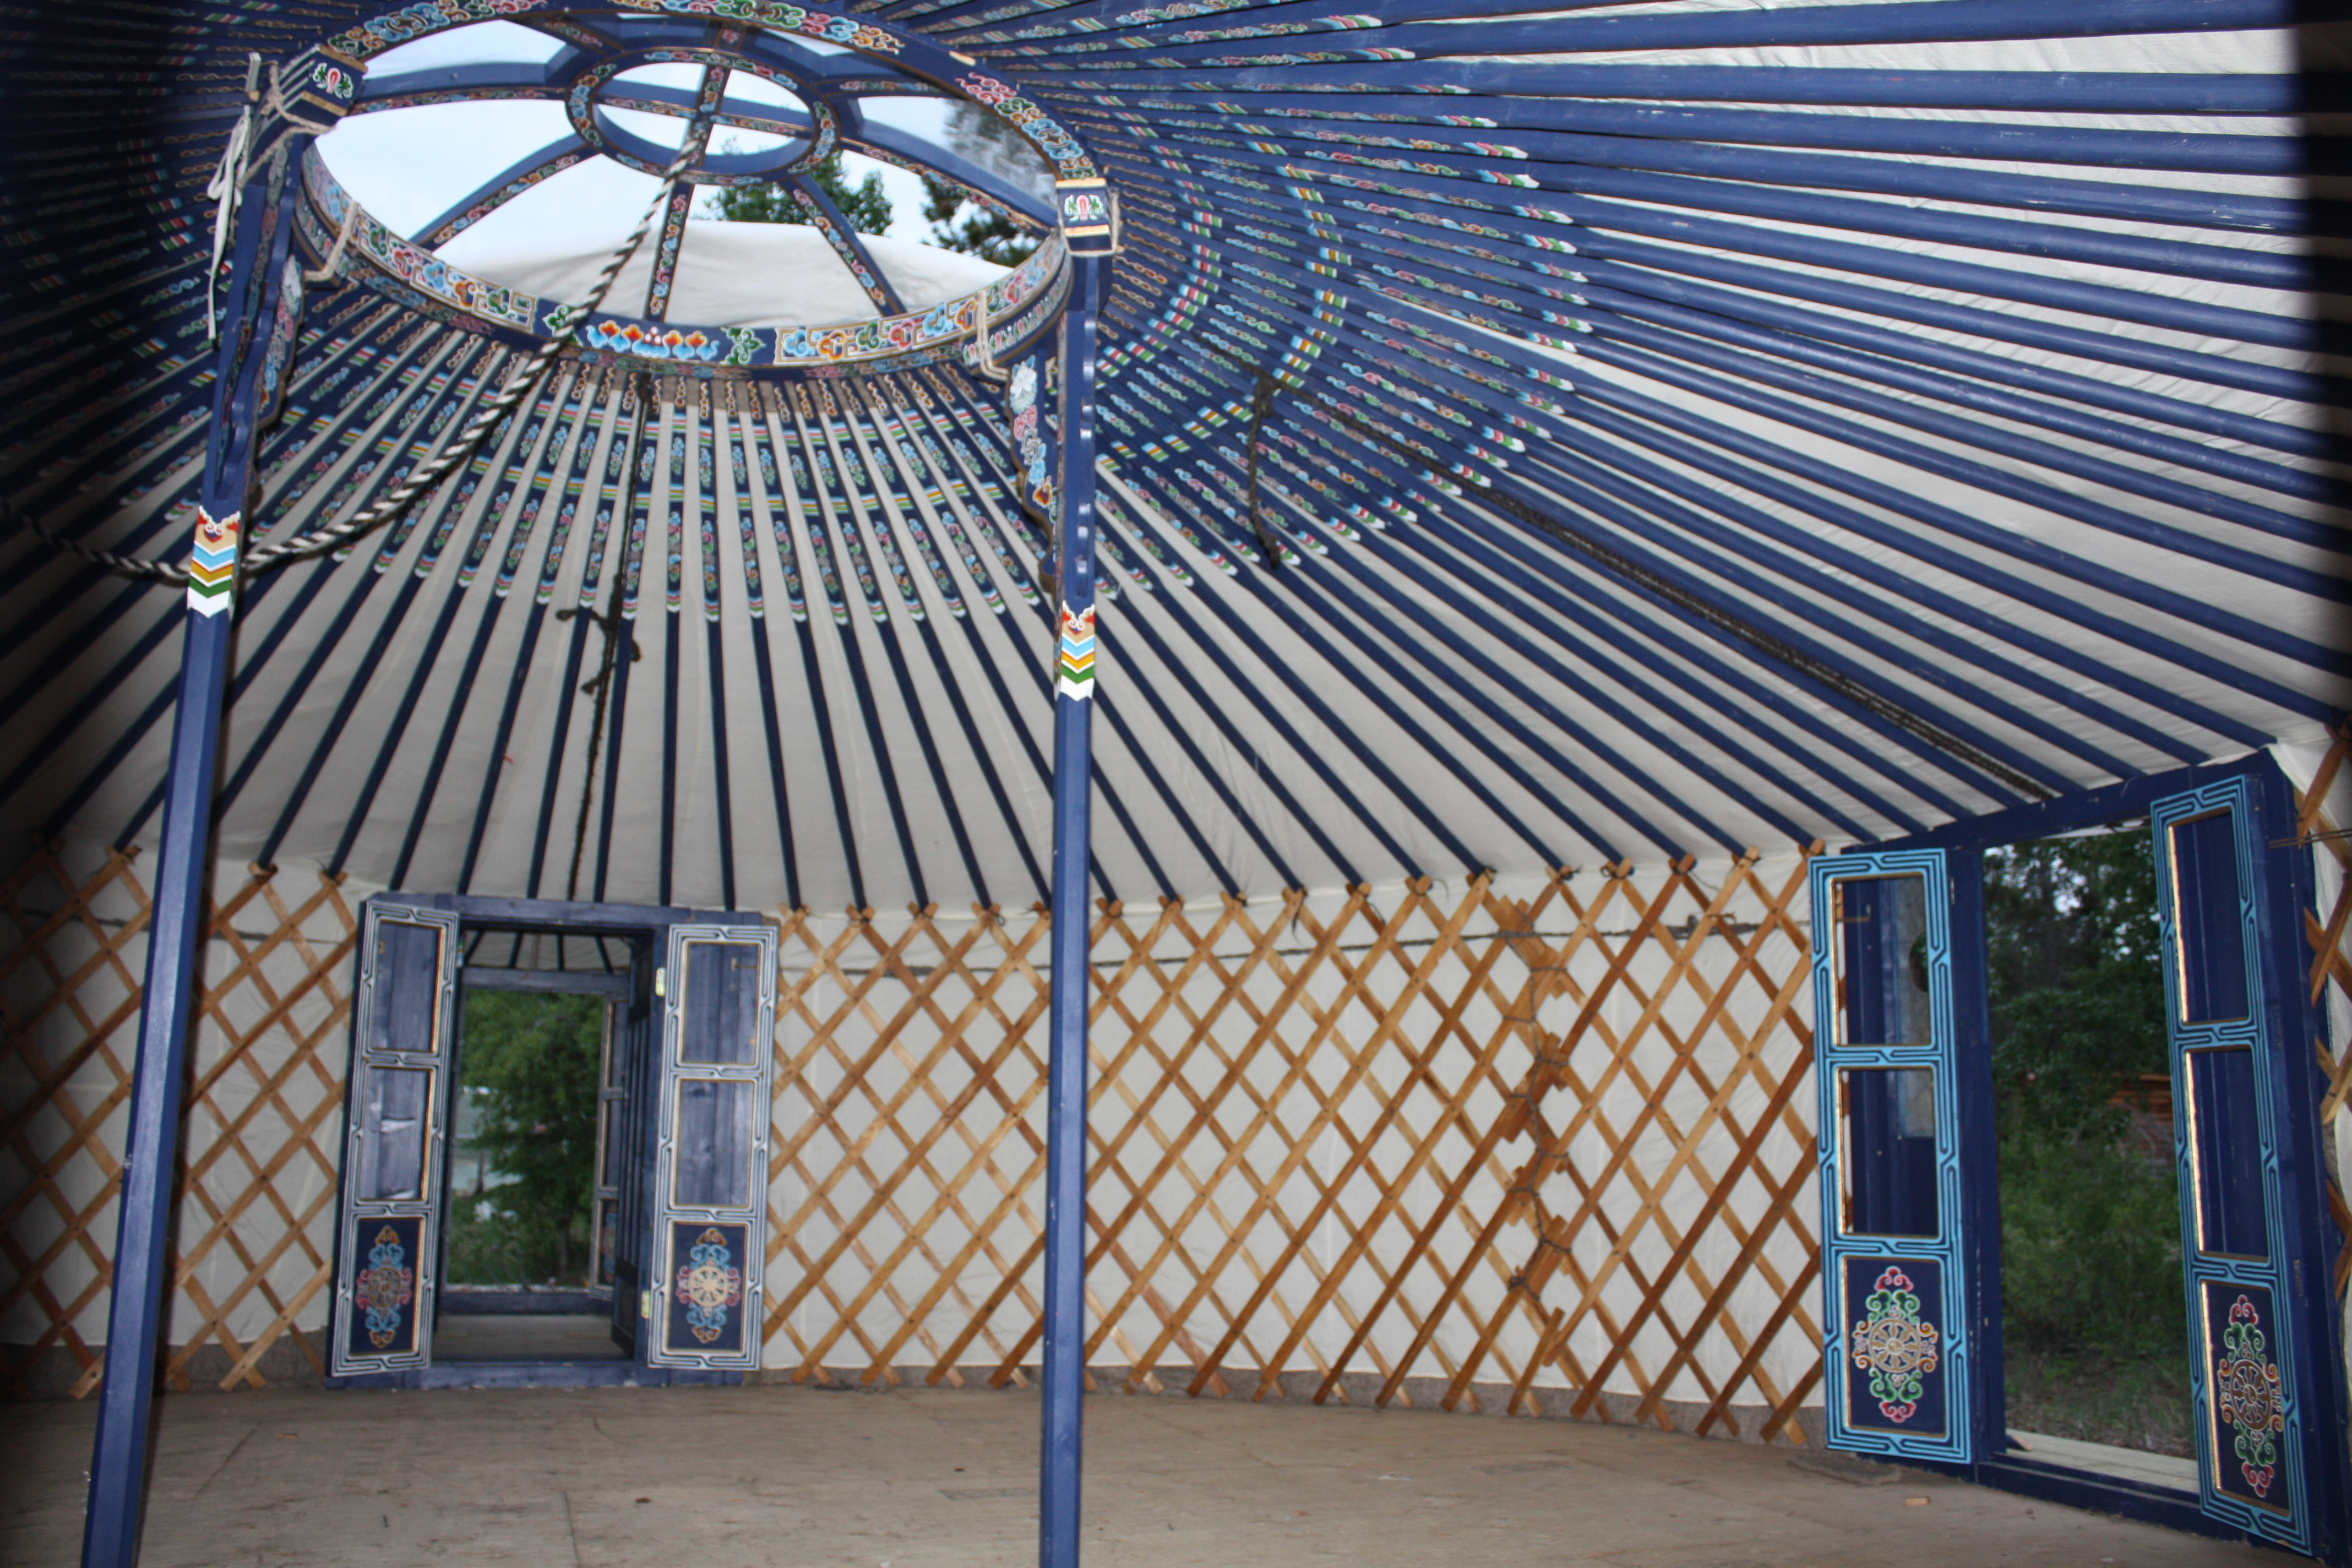 Groovy Yurt with tall walls